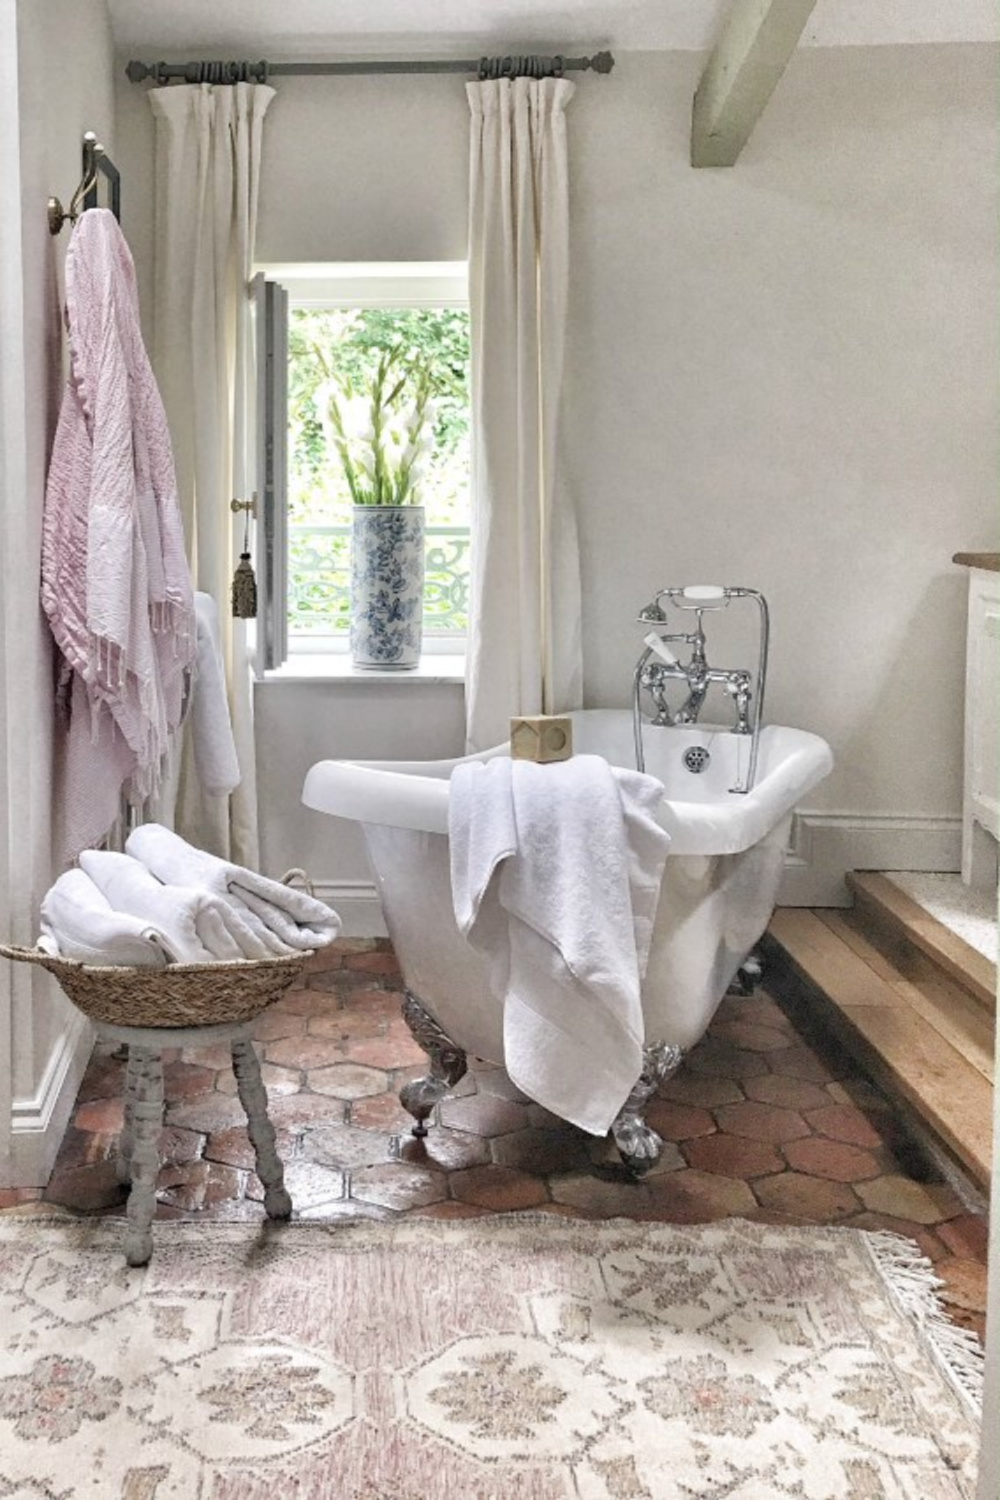 A romantic clawfoot tub situated near the window overlooking the French countryside is an invitation to retreat - Vivi et Margot. #bathroomdesign #frenchfarmhouse #clawfoottub #interiordesign #romanticbathroom